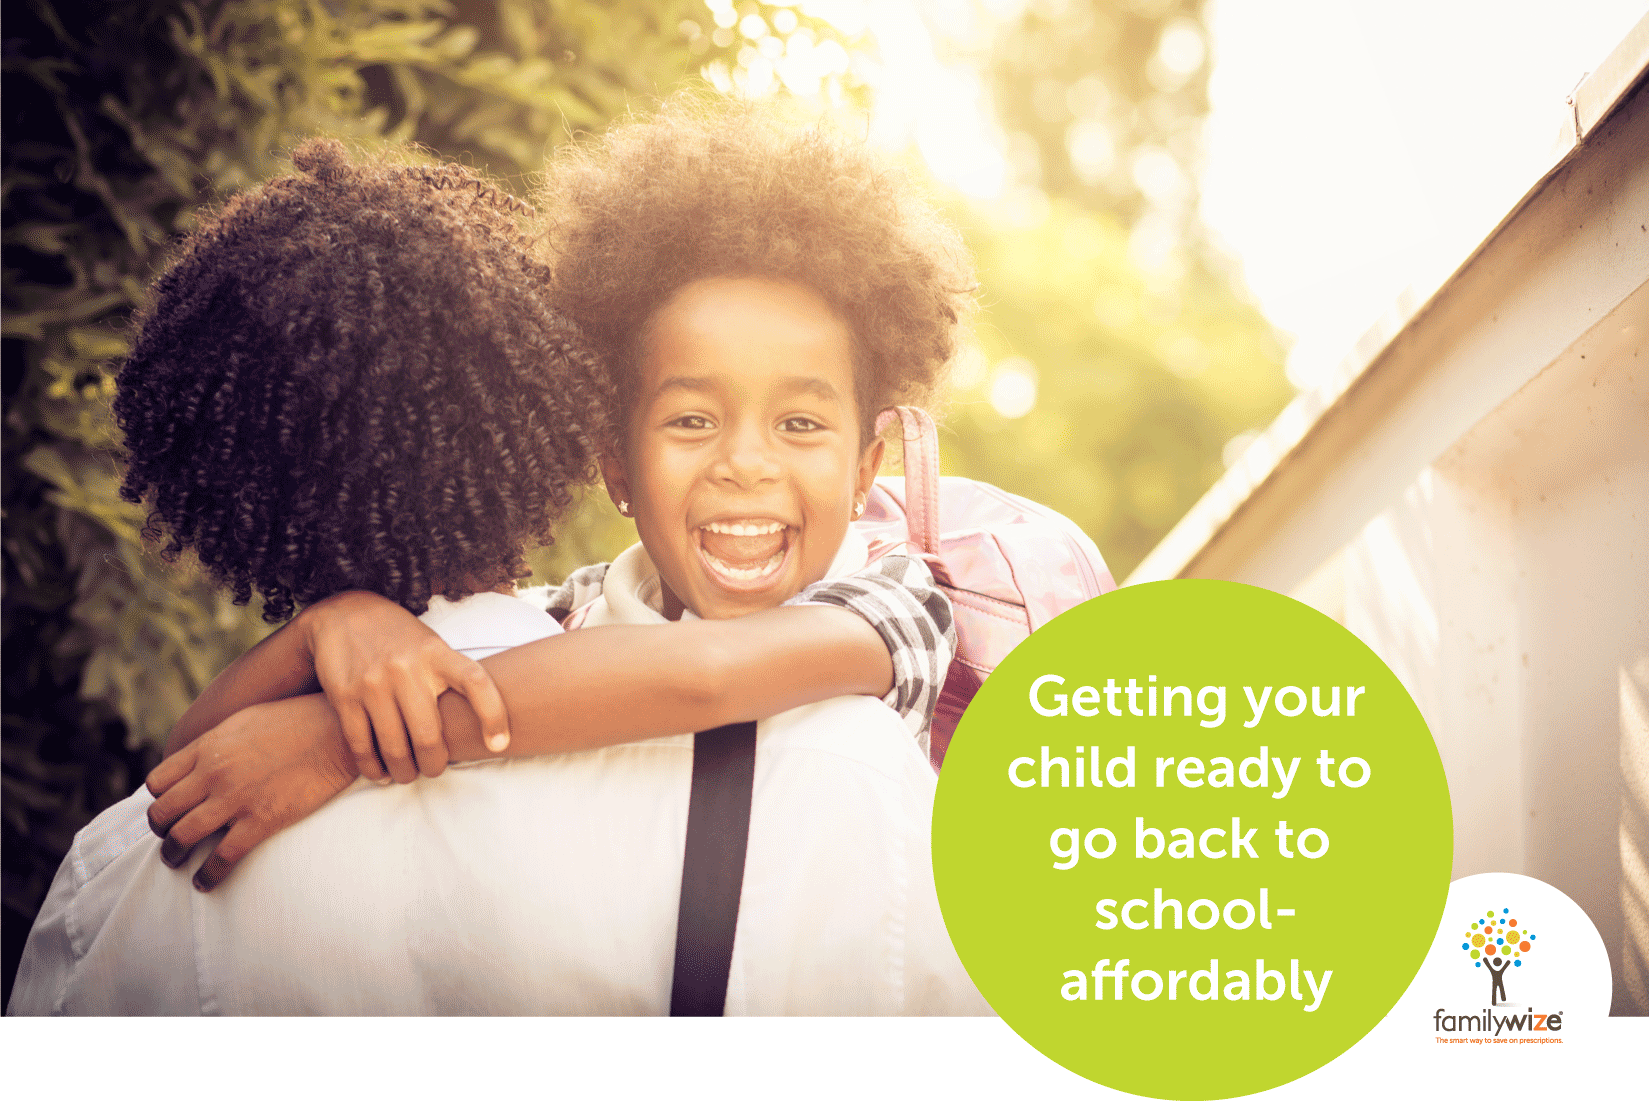 How to affordable get your child ready to go back to school